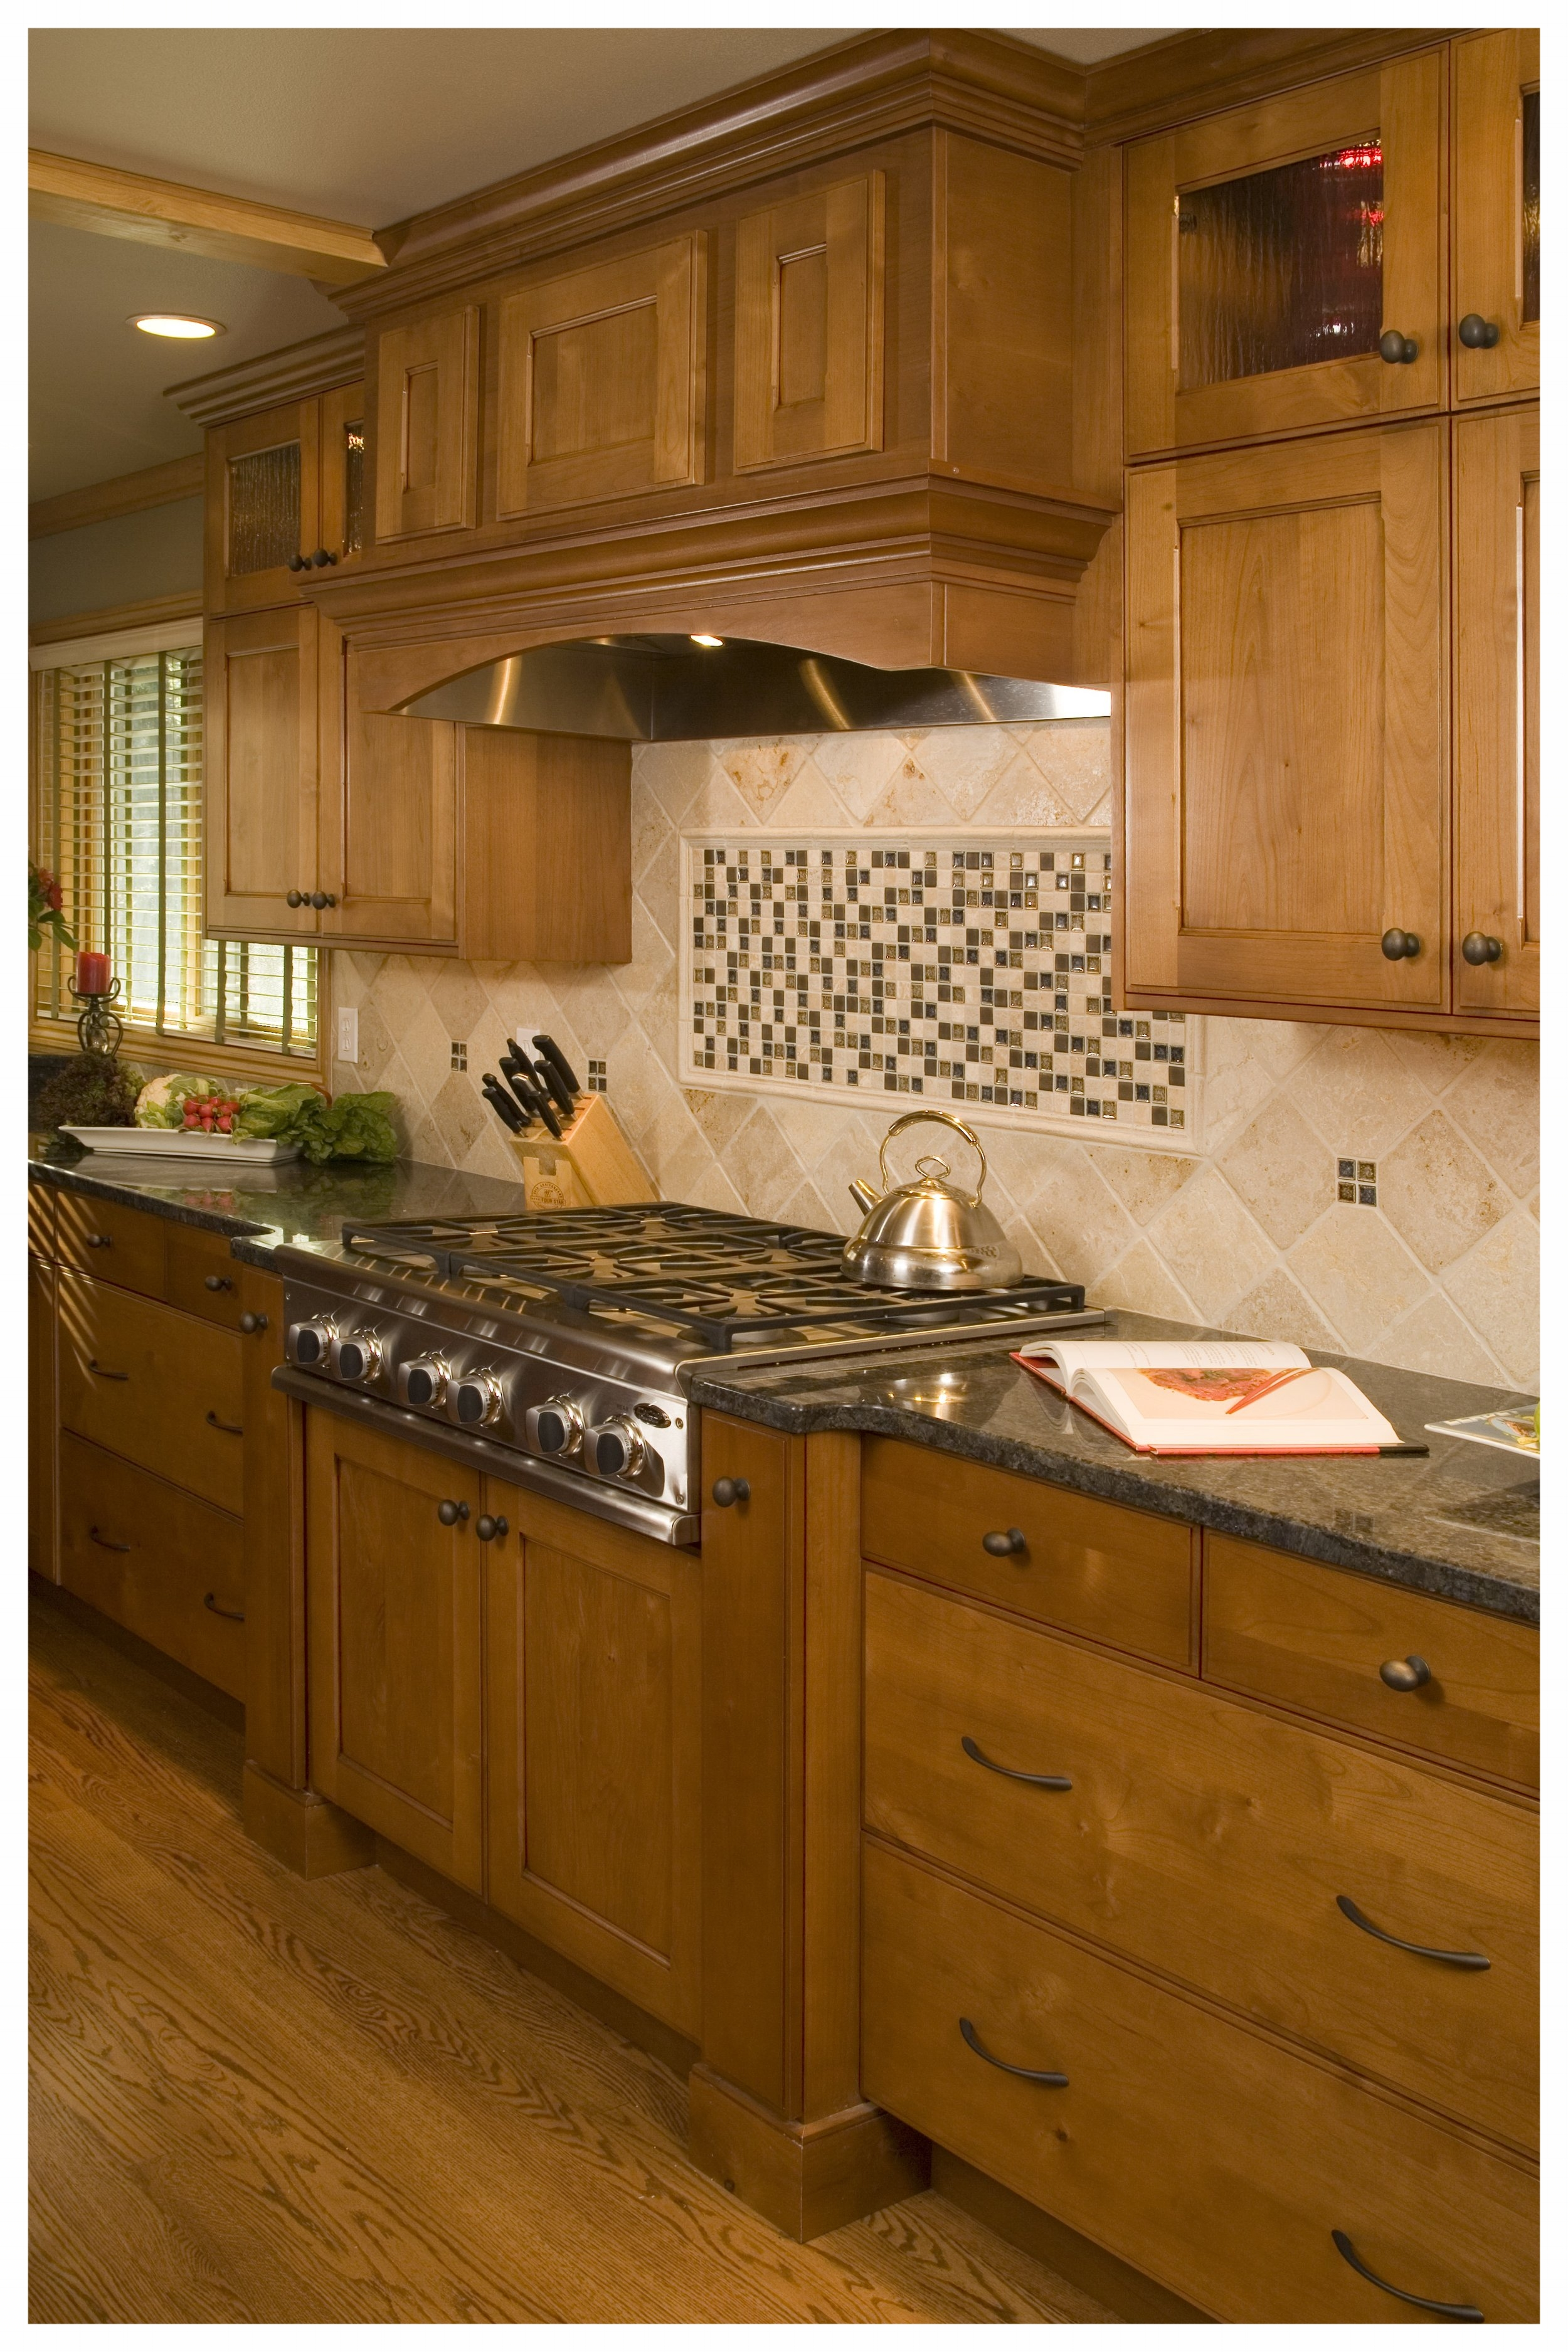 Woodinville Brookside Traditional Kitchen 5.jpg